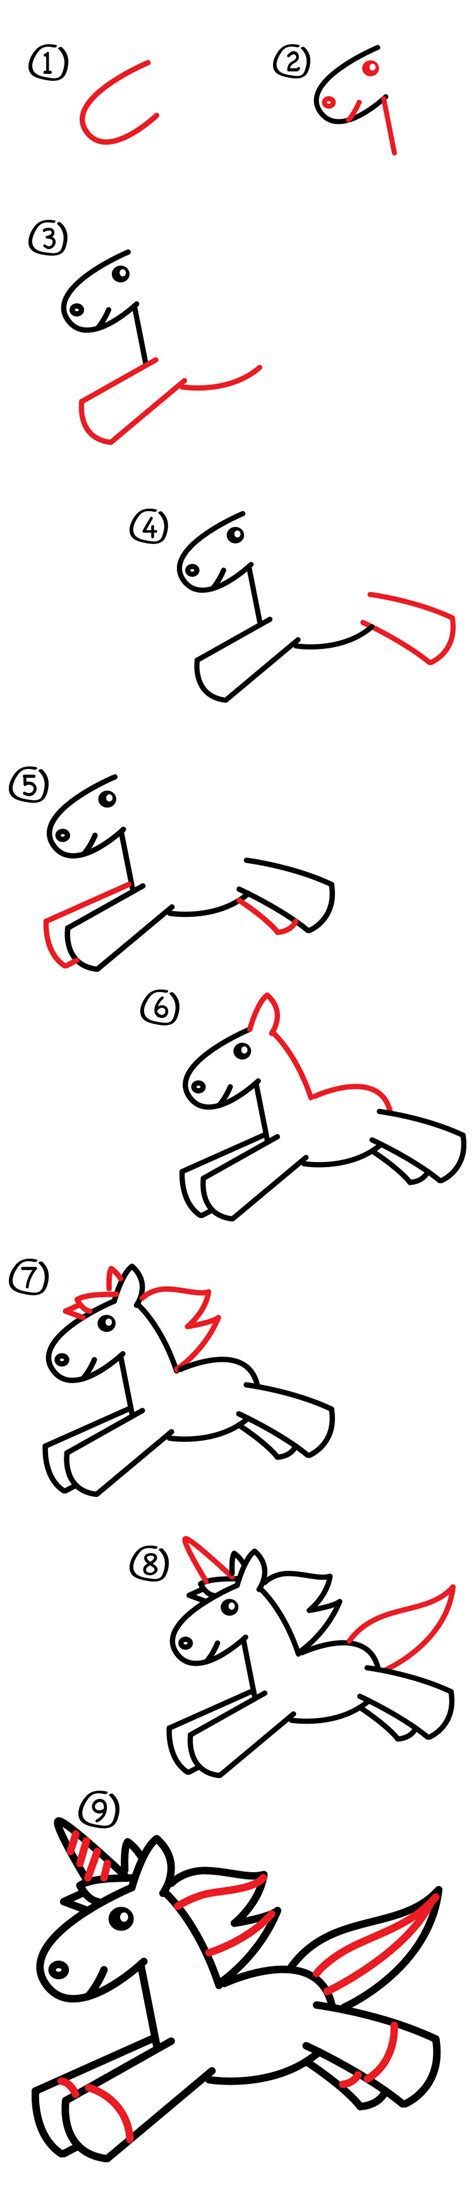 unicorn step by step how to draw a unicorn for